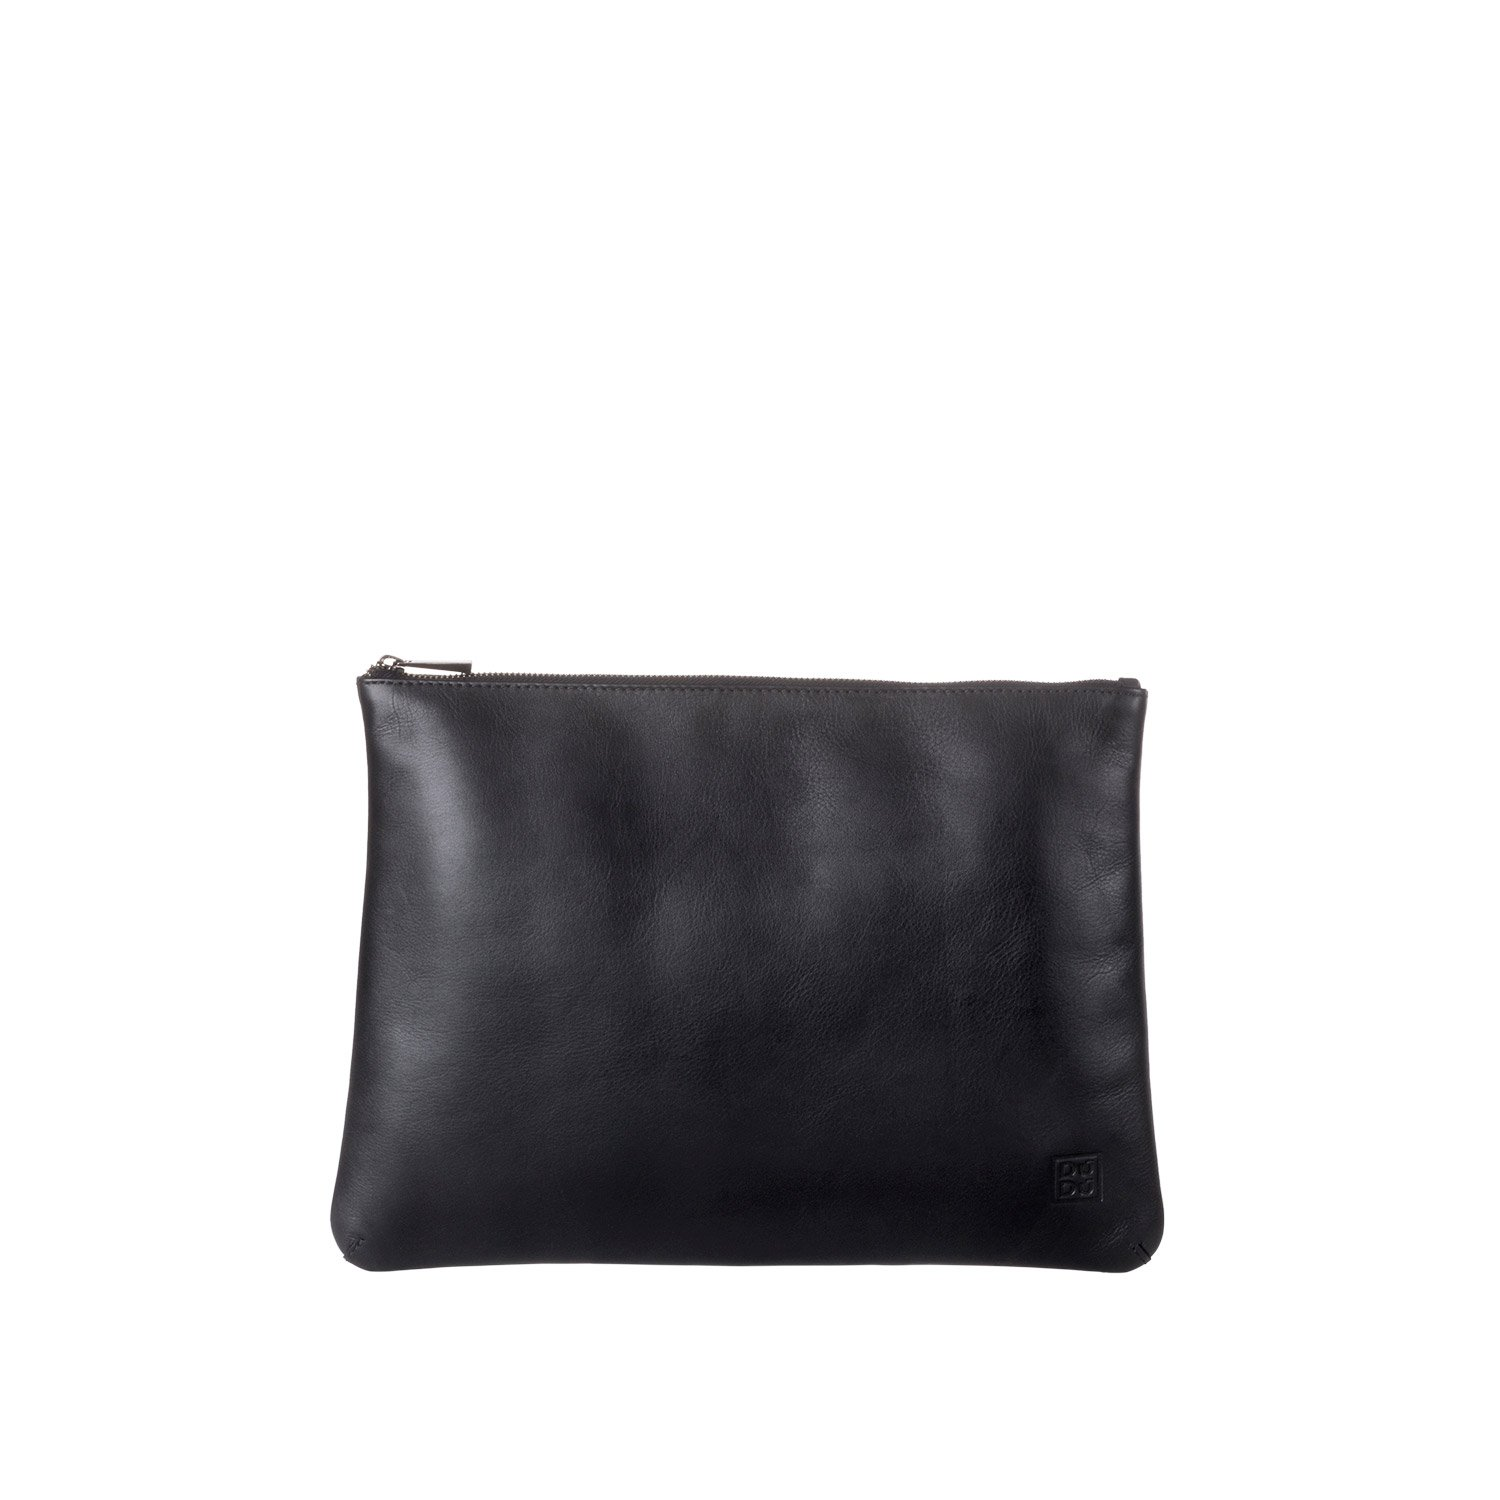 DUDU Clutch Bag Purse with Handle for ladies and men in Real Leather Slim & Large Handbag with Zipper closure - Isa - Black